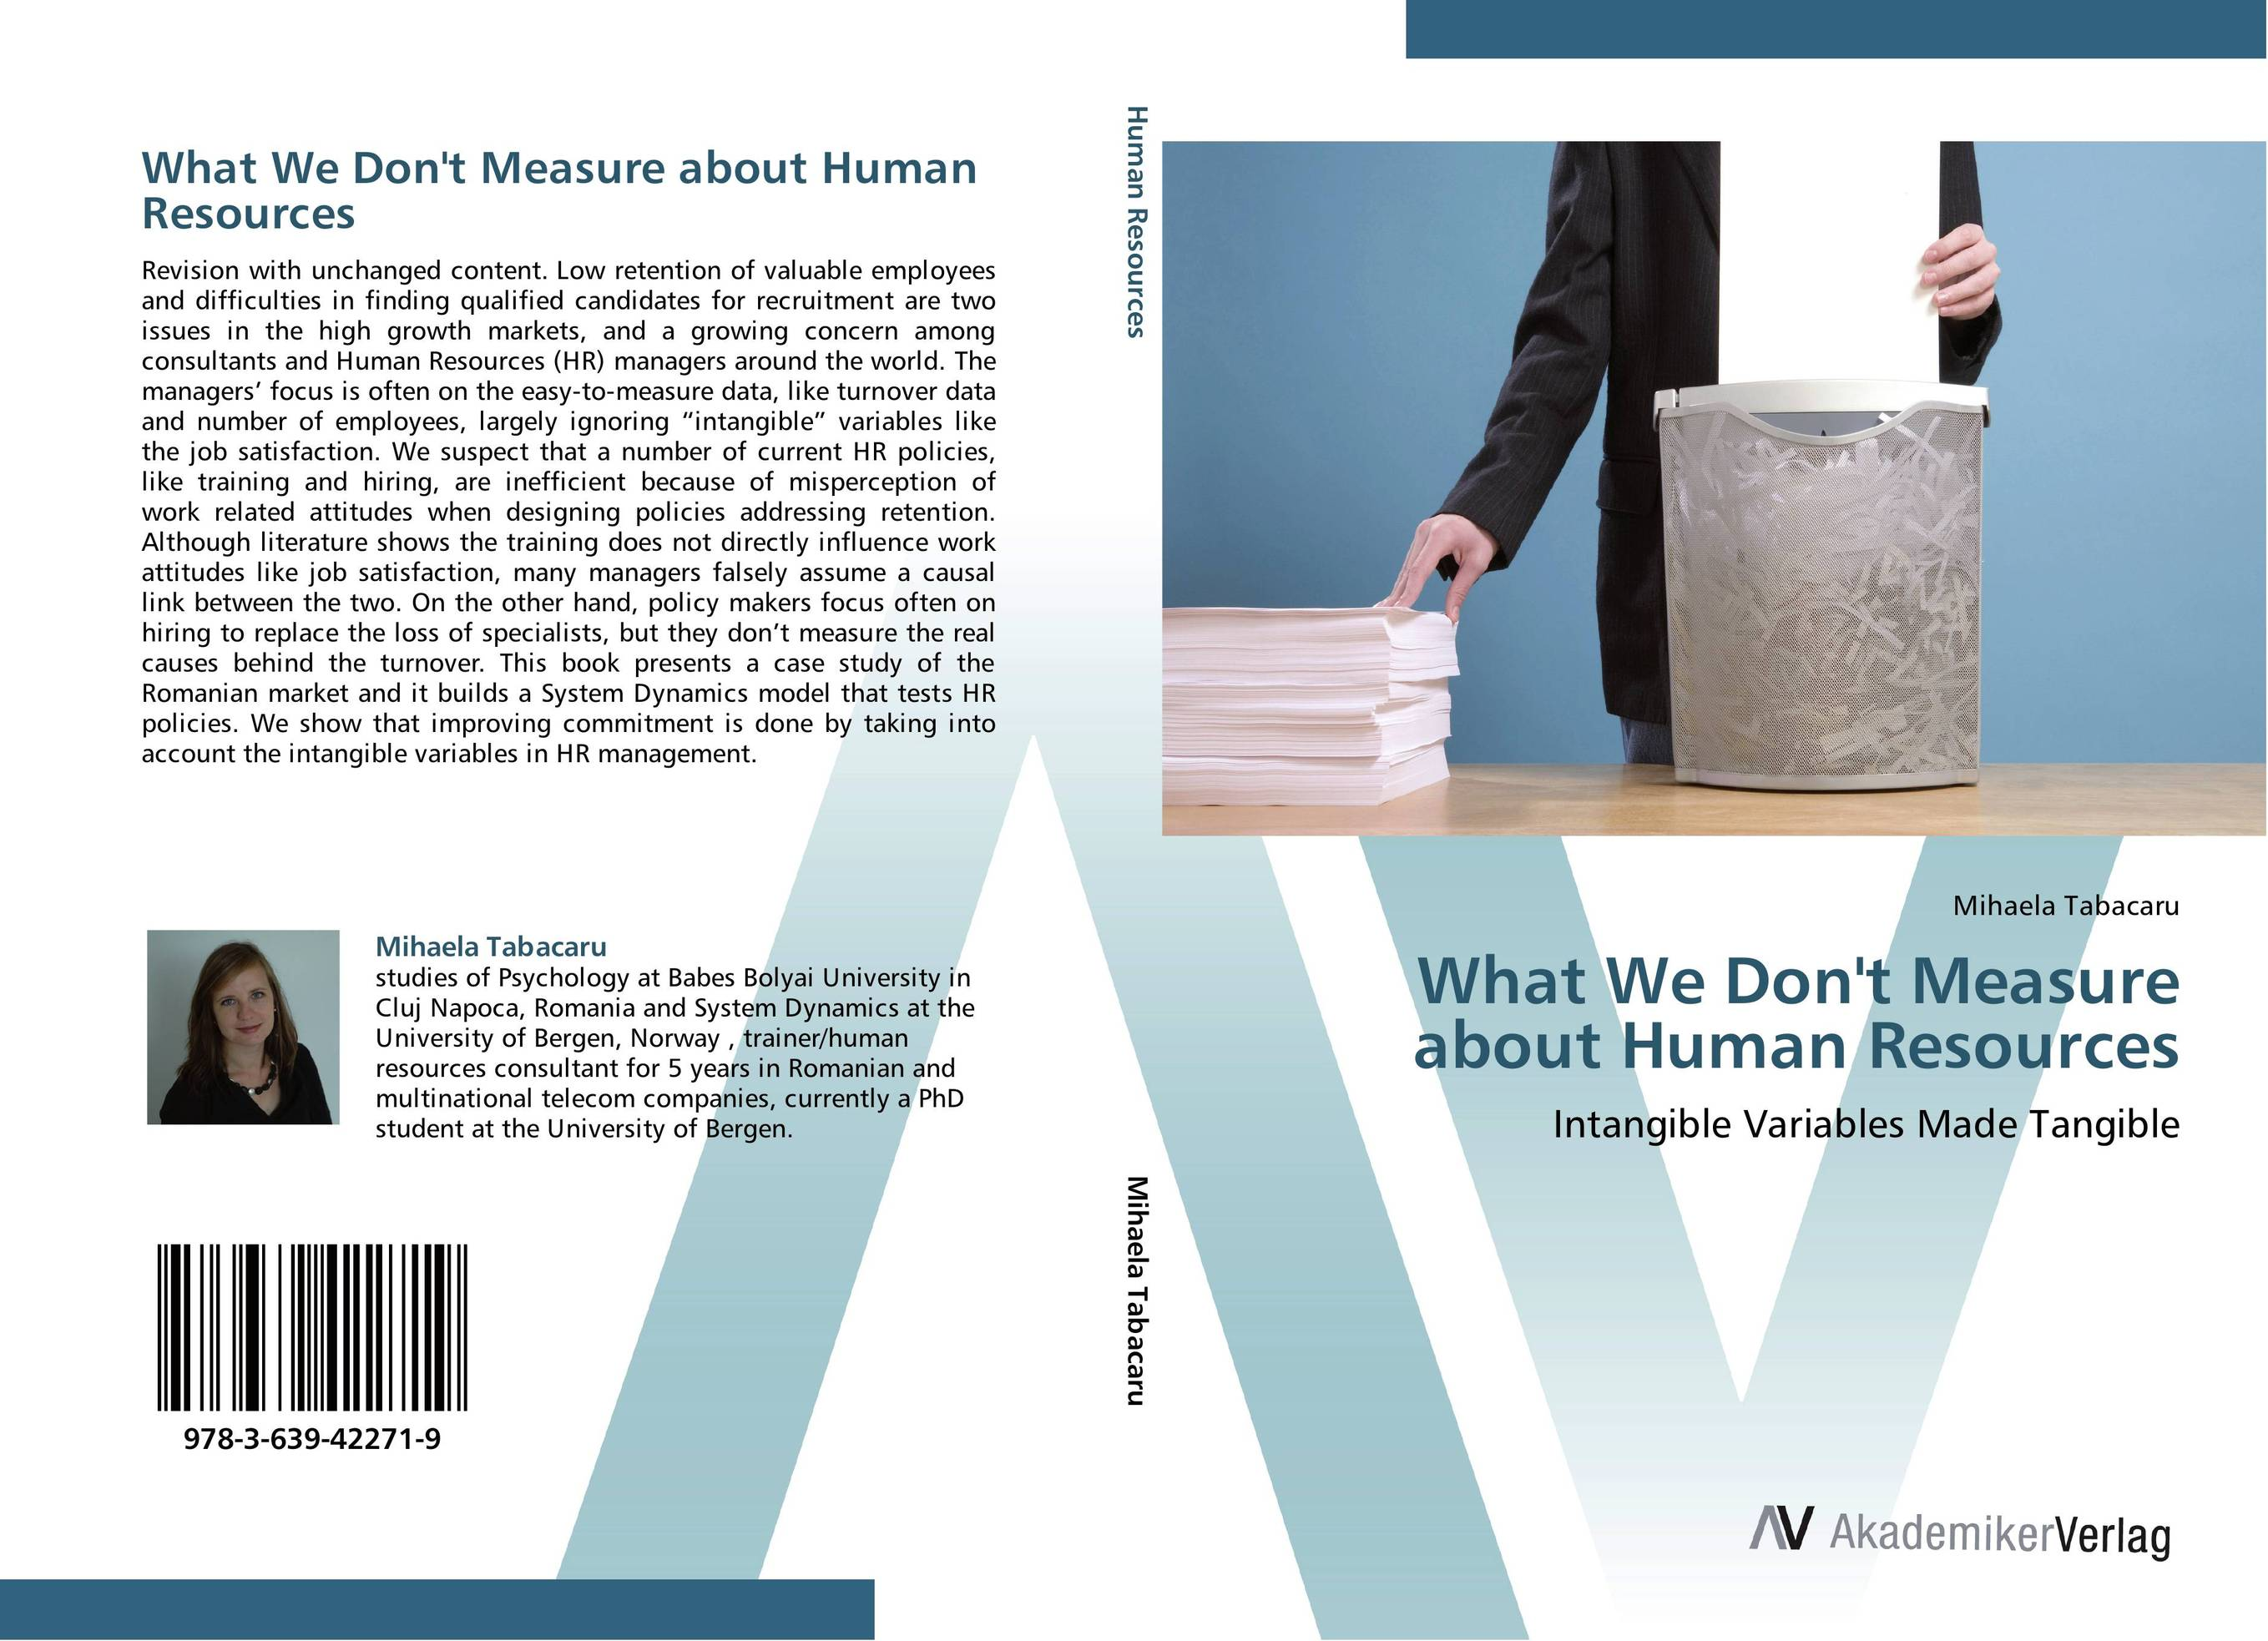 What We Don't Measure about Human Resources